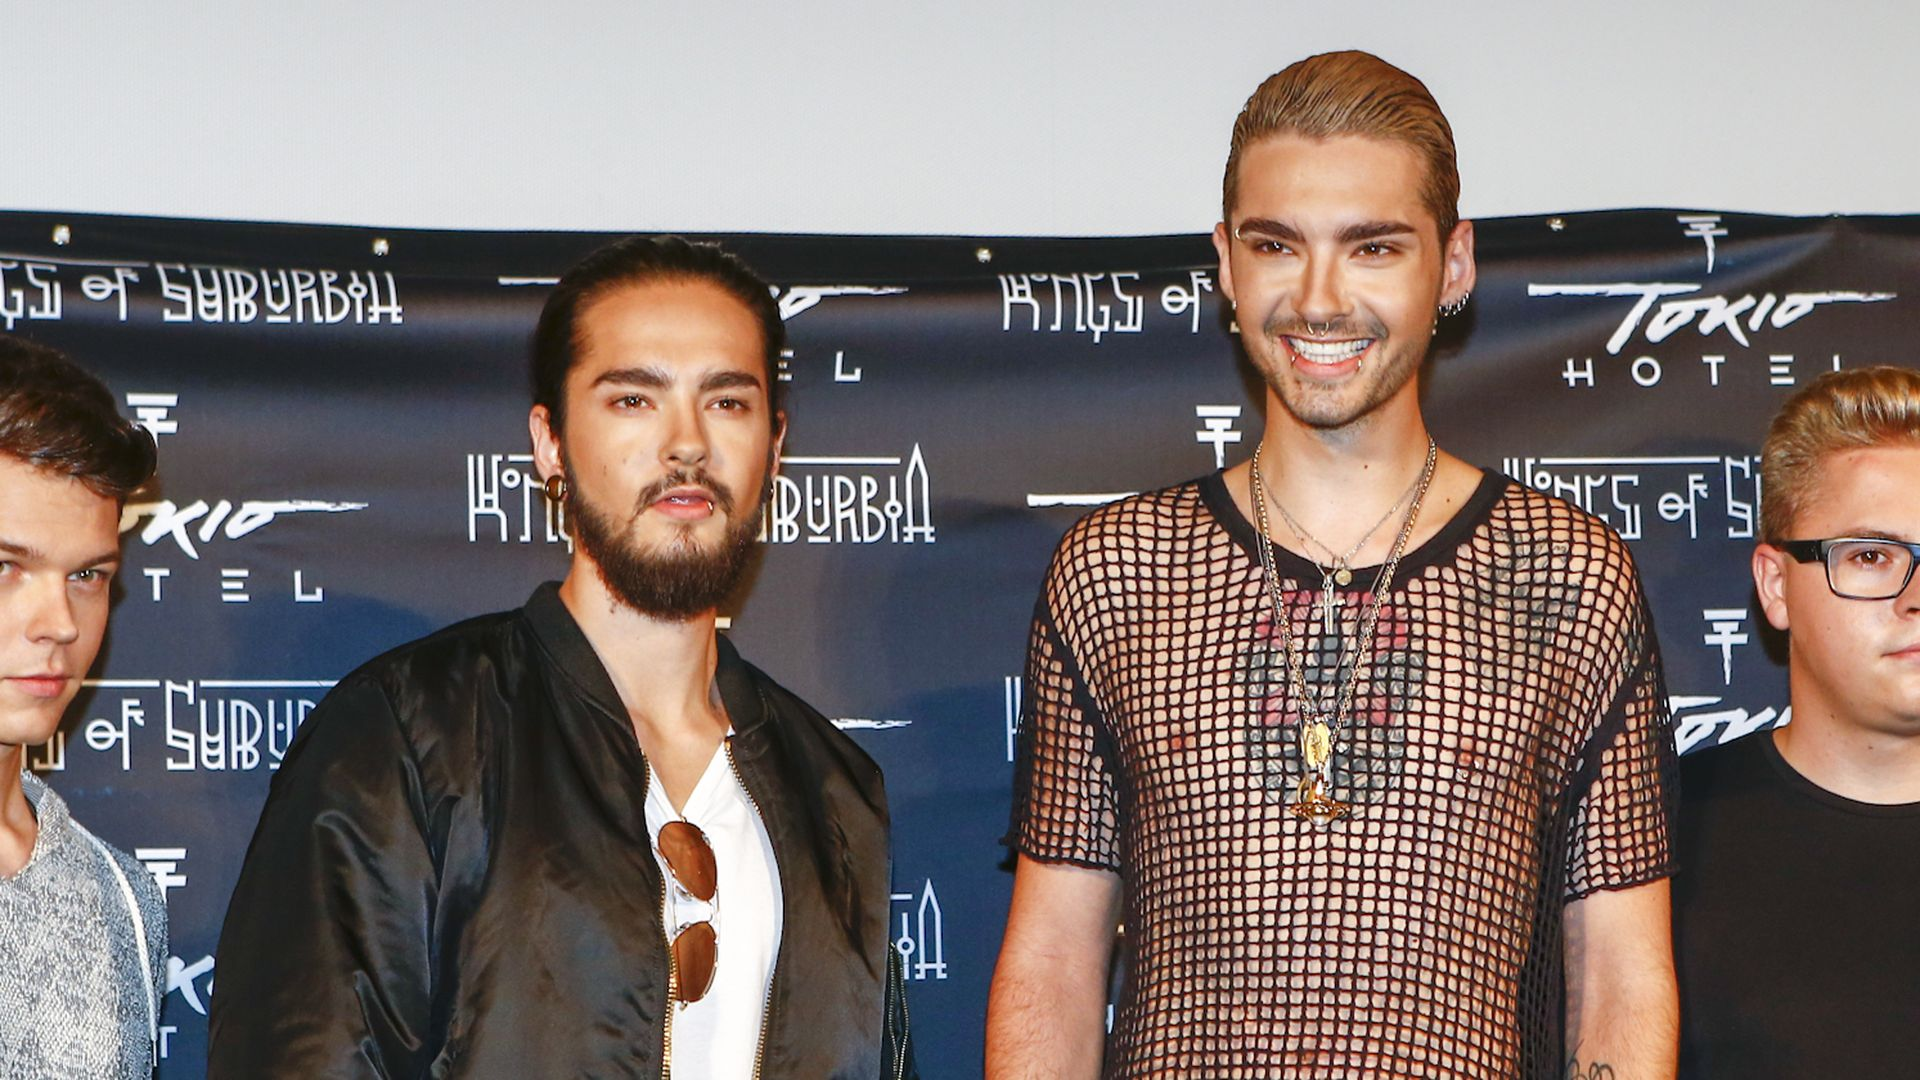 Bill tom nackt hot picture 61